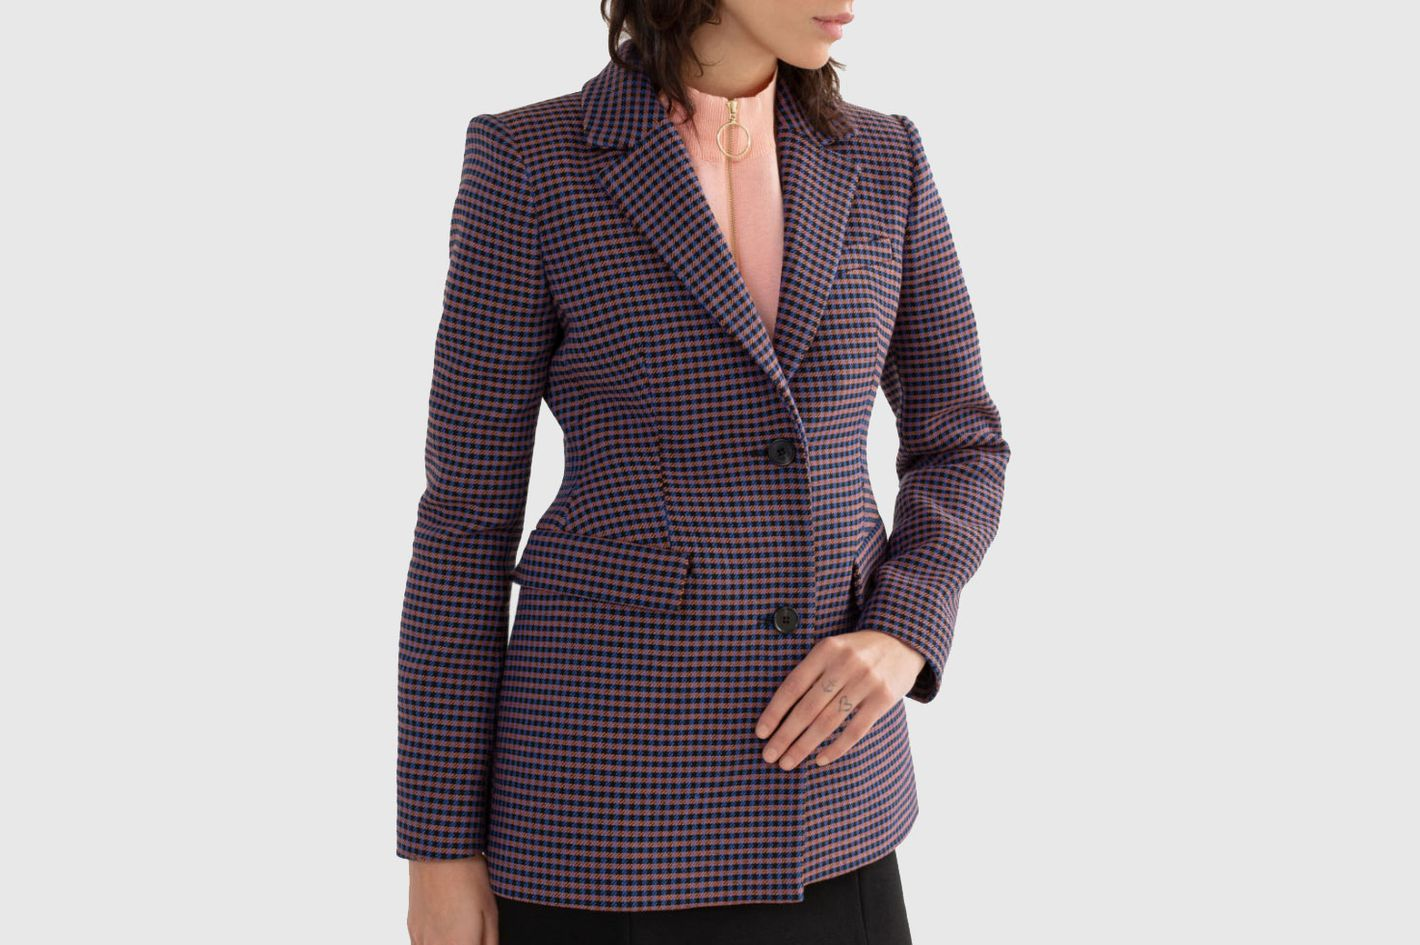 384d057c The 15 Best Work Blazers for the Professional Woman, 2018